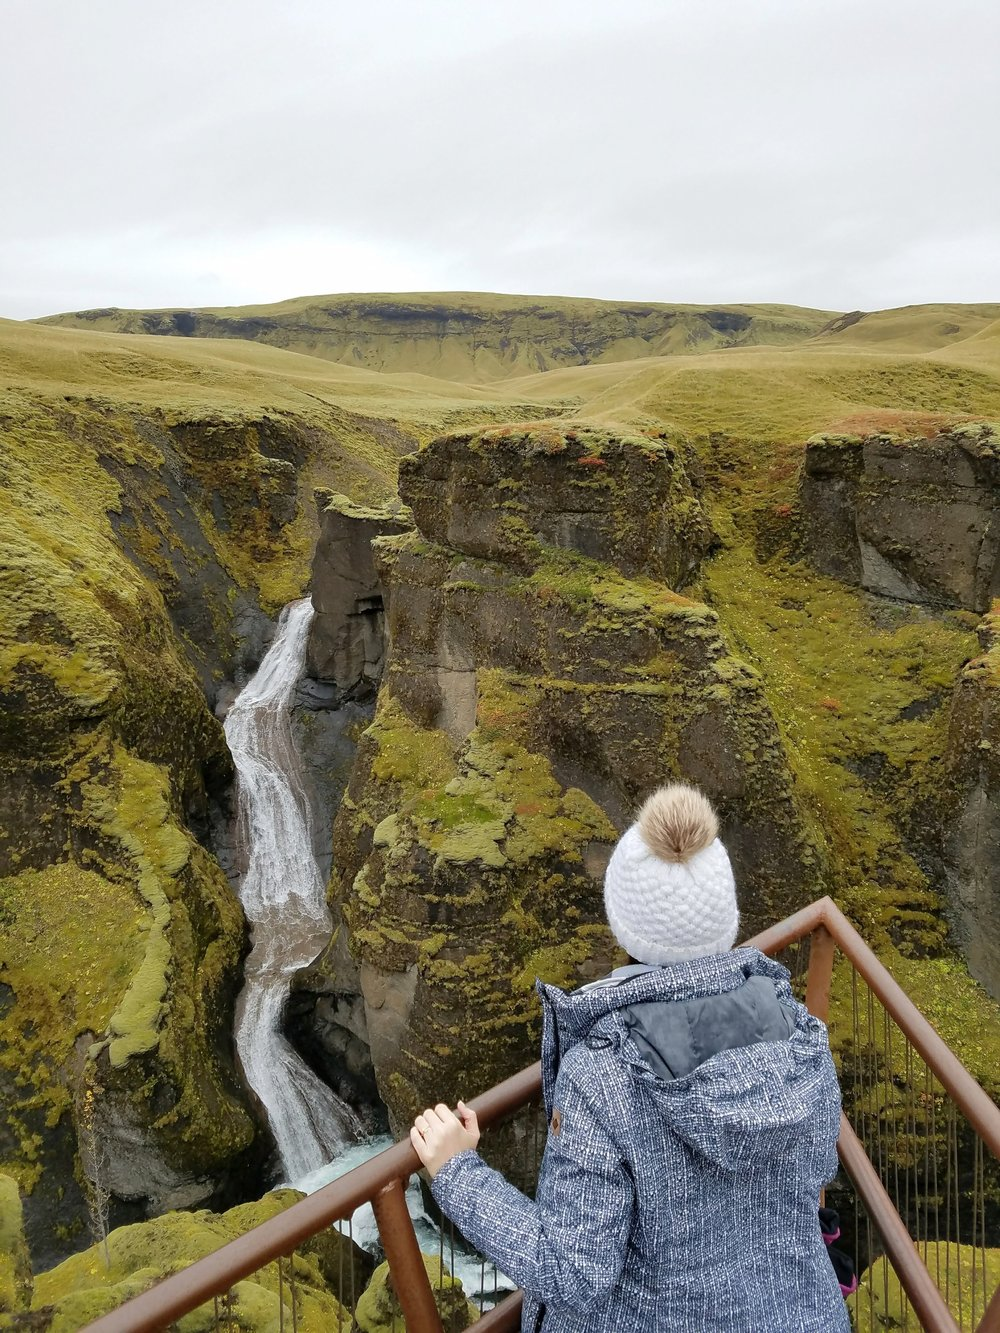 Some of the best Iceland waterfalls are in the south region of Iceland. Fjadrargljugur runs through a mossy green canyon. dsfoss but hidden by cliffs. #travel #iceland #icelandtravel #wanderlust #europe #waterfalls #naturepics  #icelandwaterfalls #waterfallsaroundtheworld #traveldestinations #traveltips